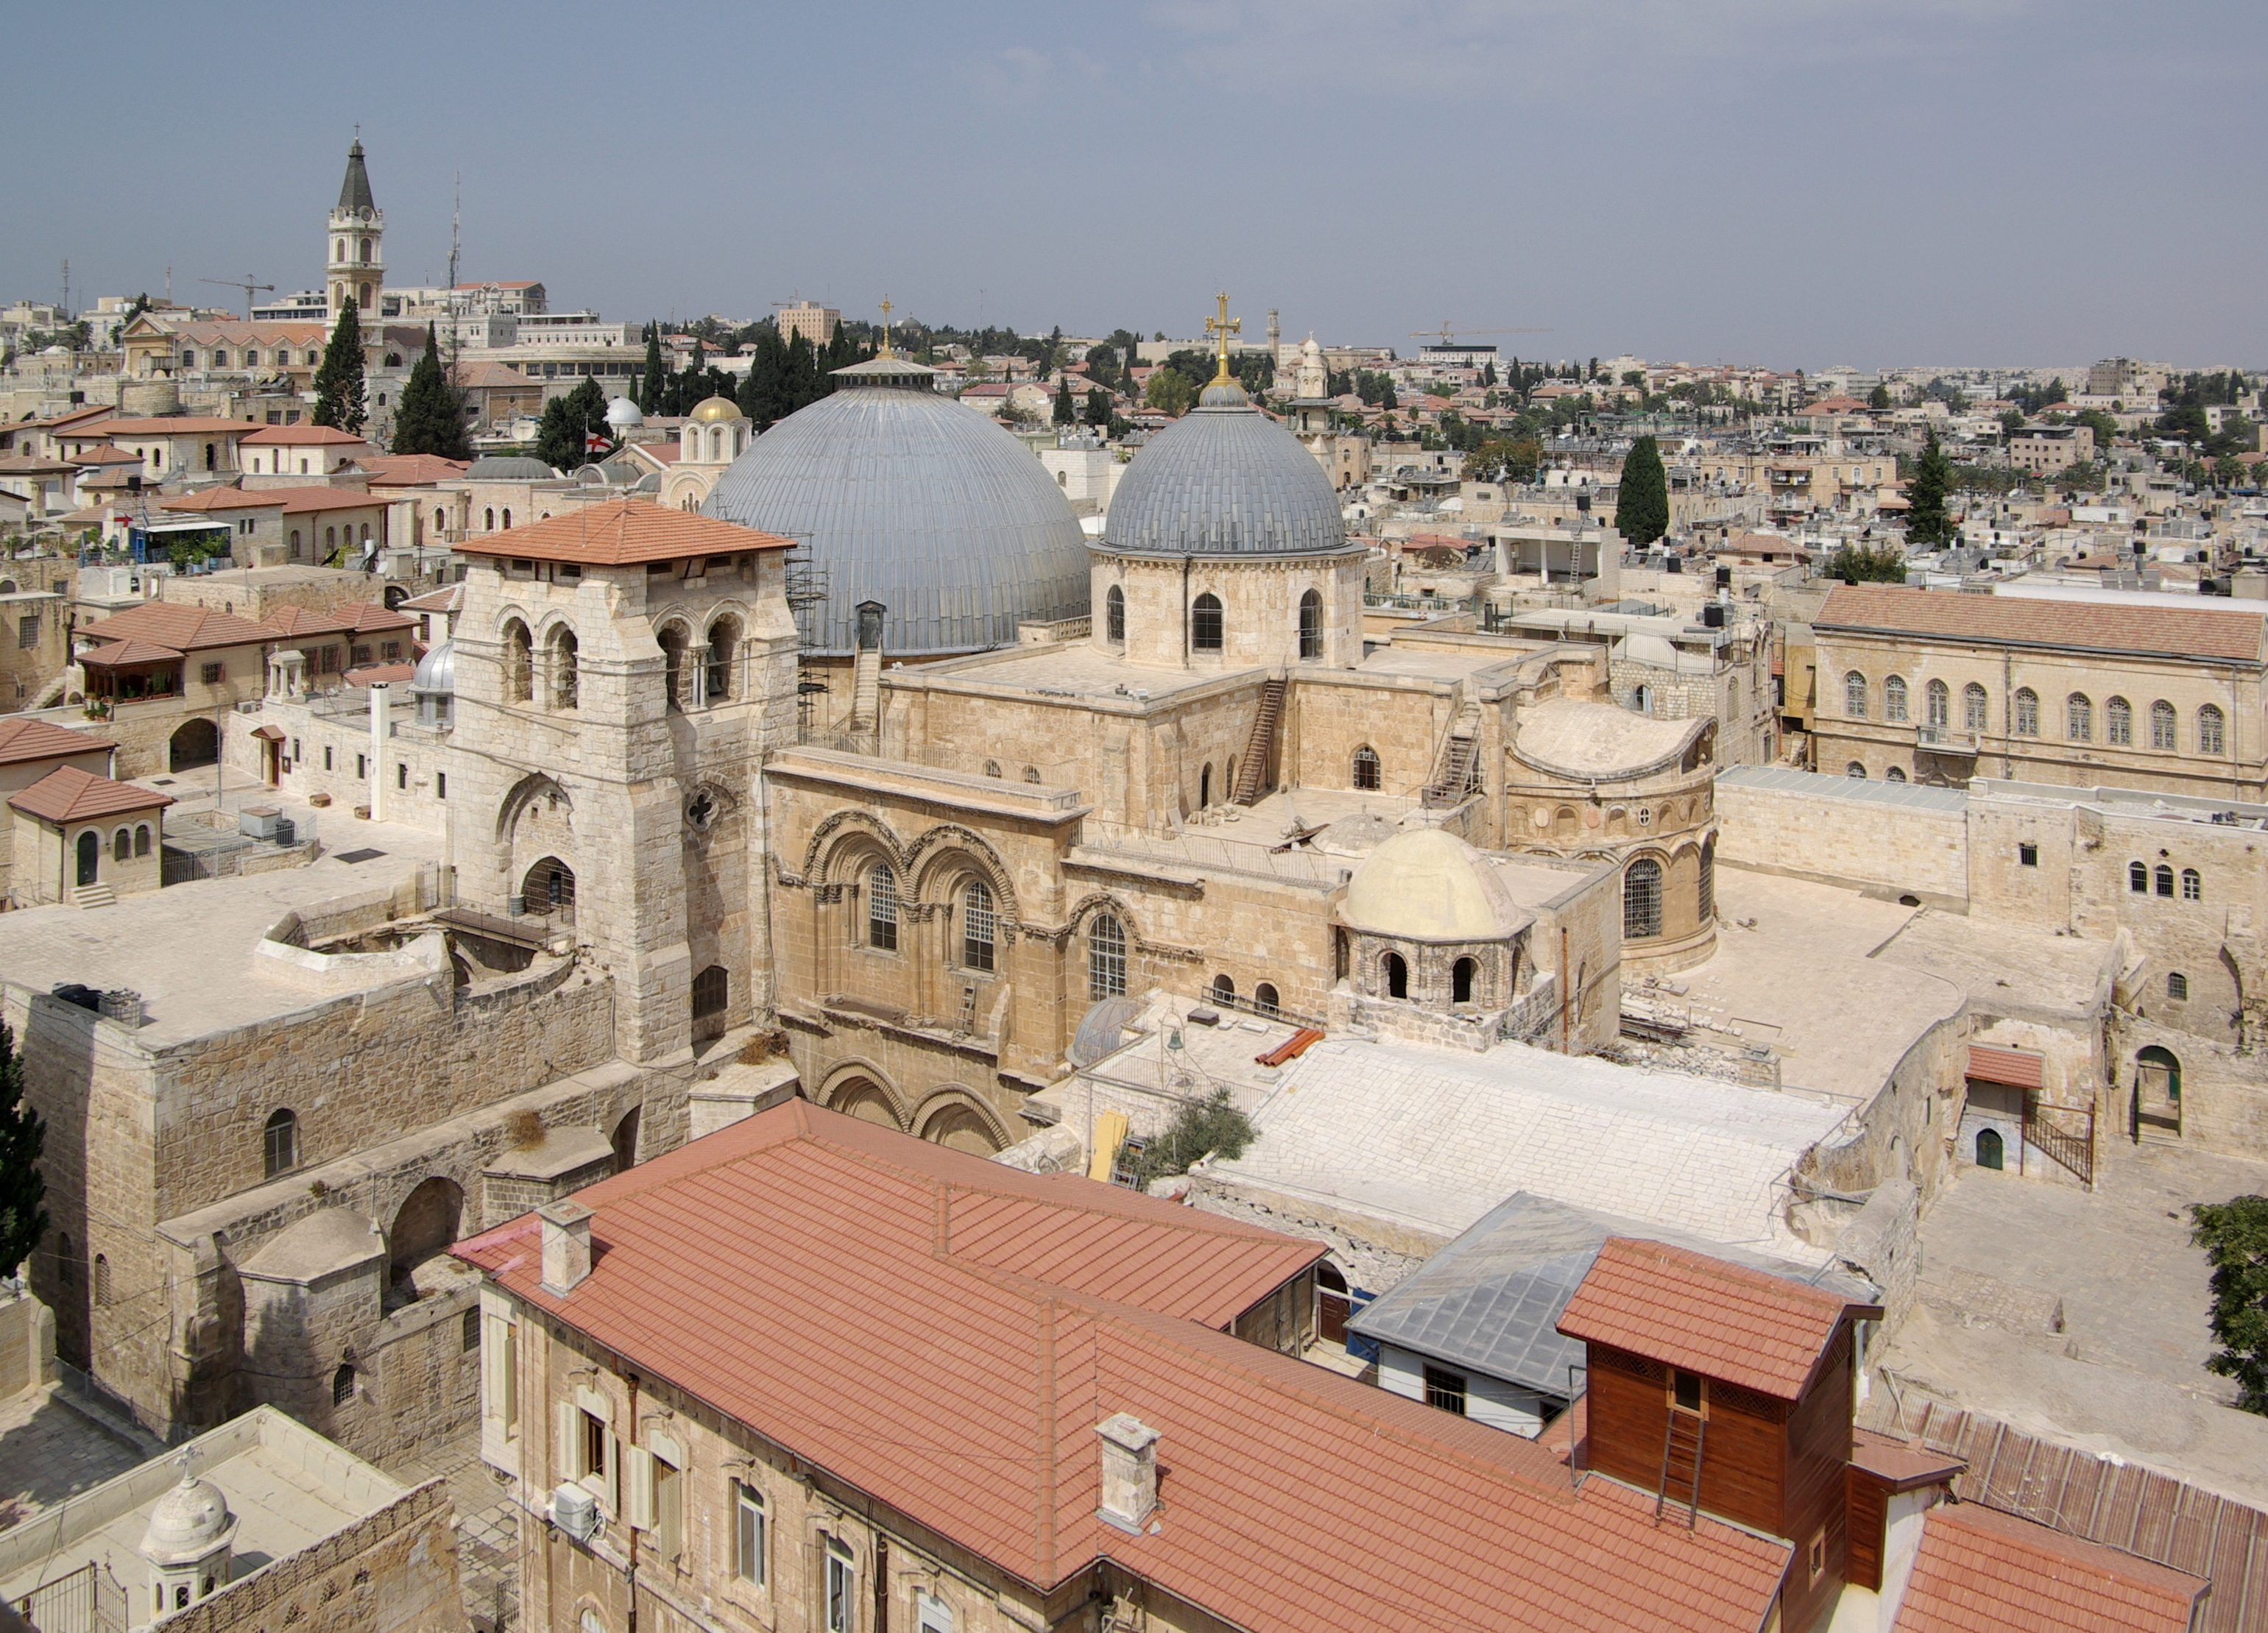 https://upload.wikimedia.org/wikipedia/commons/e/e6/Jerusalem_Holy_Sepulchre_BW_23.JPG